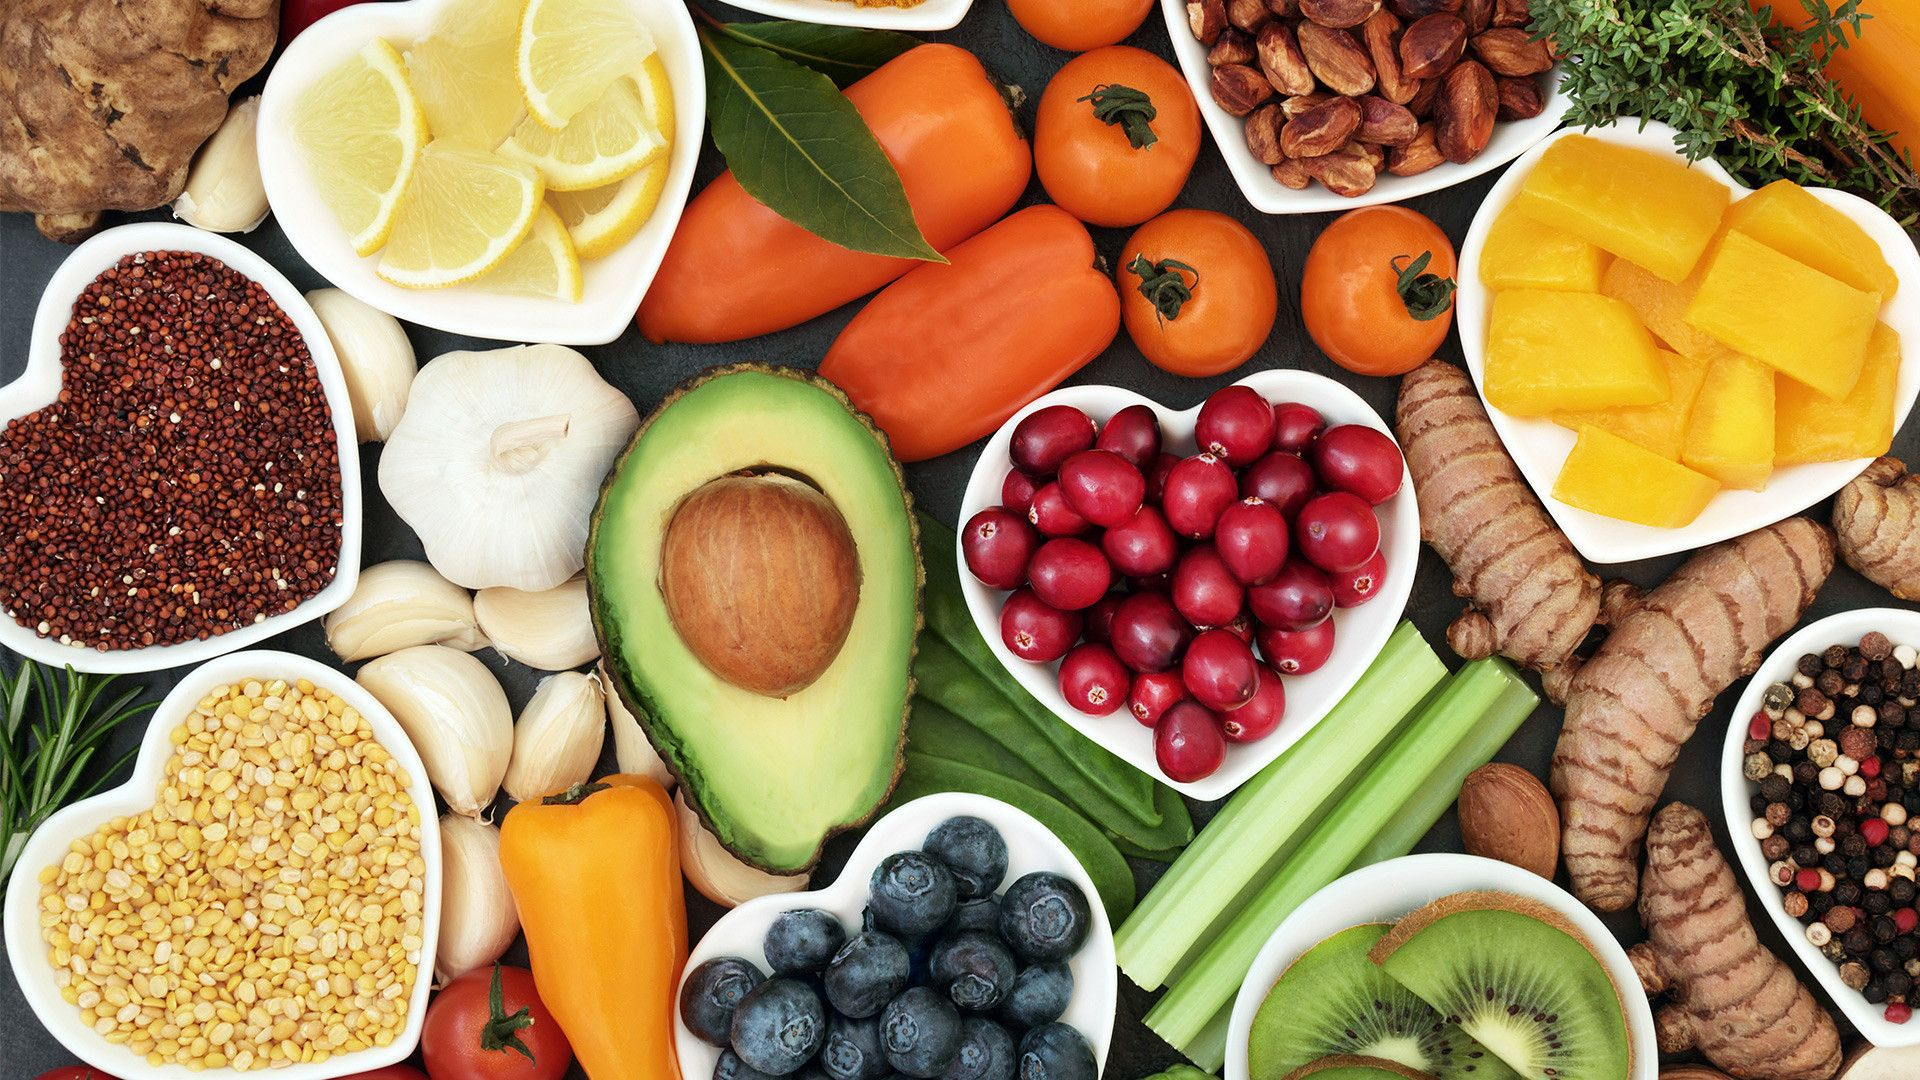 Vegetarian Diets Improve Health Outcomes and Reduce Risk for Heart Disease